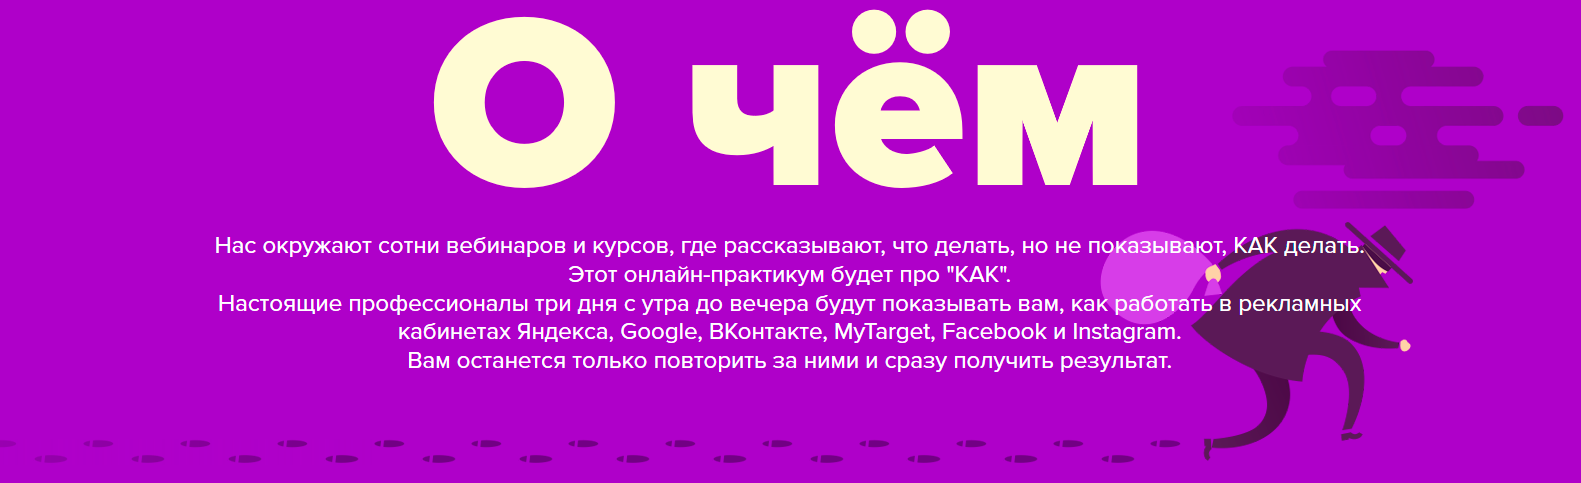 find-trafic-krizis-3.png